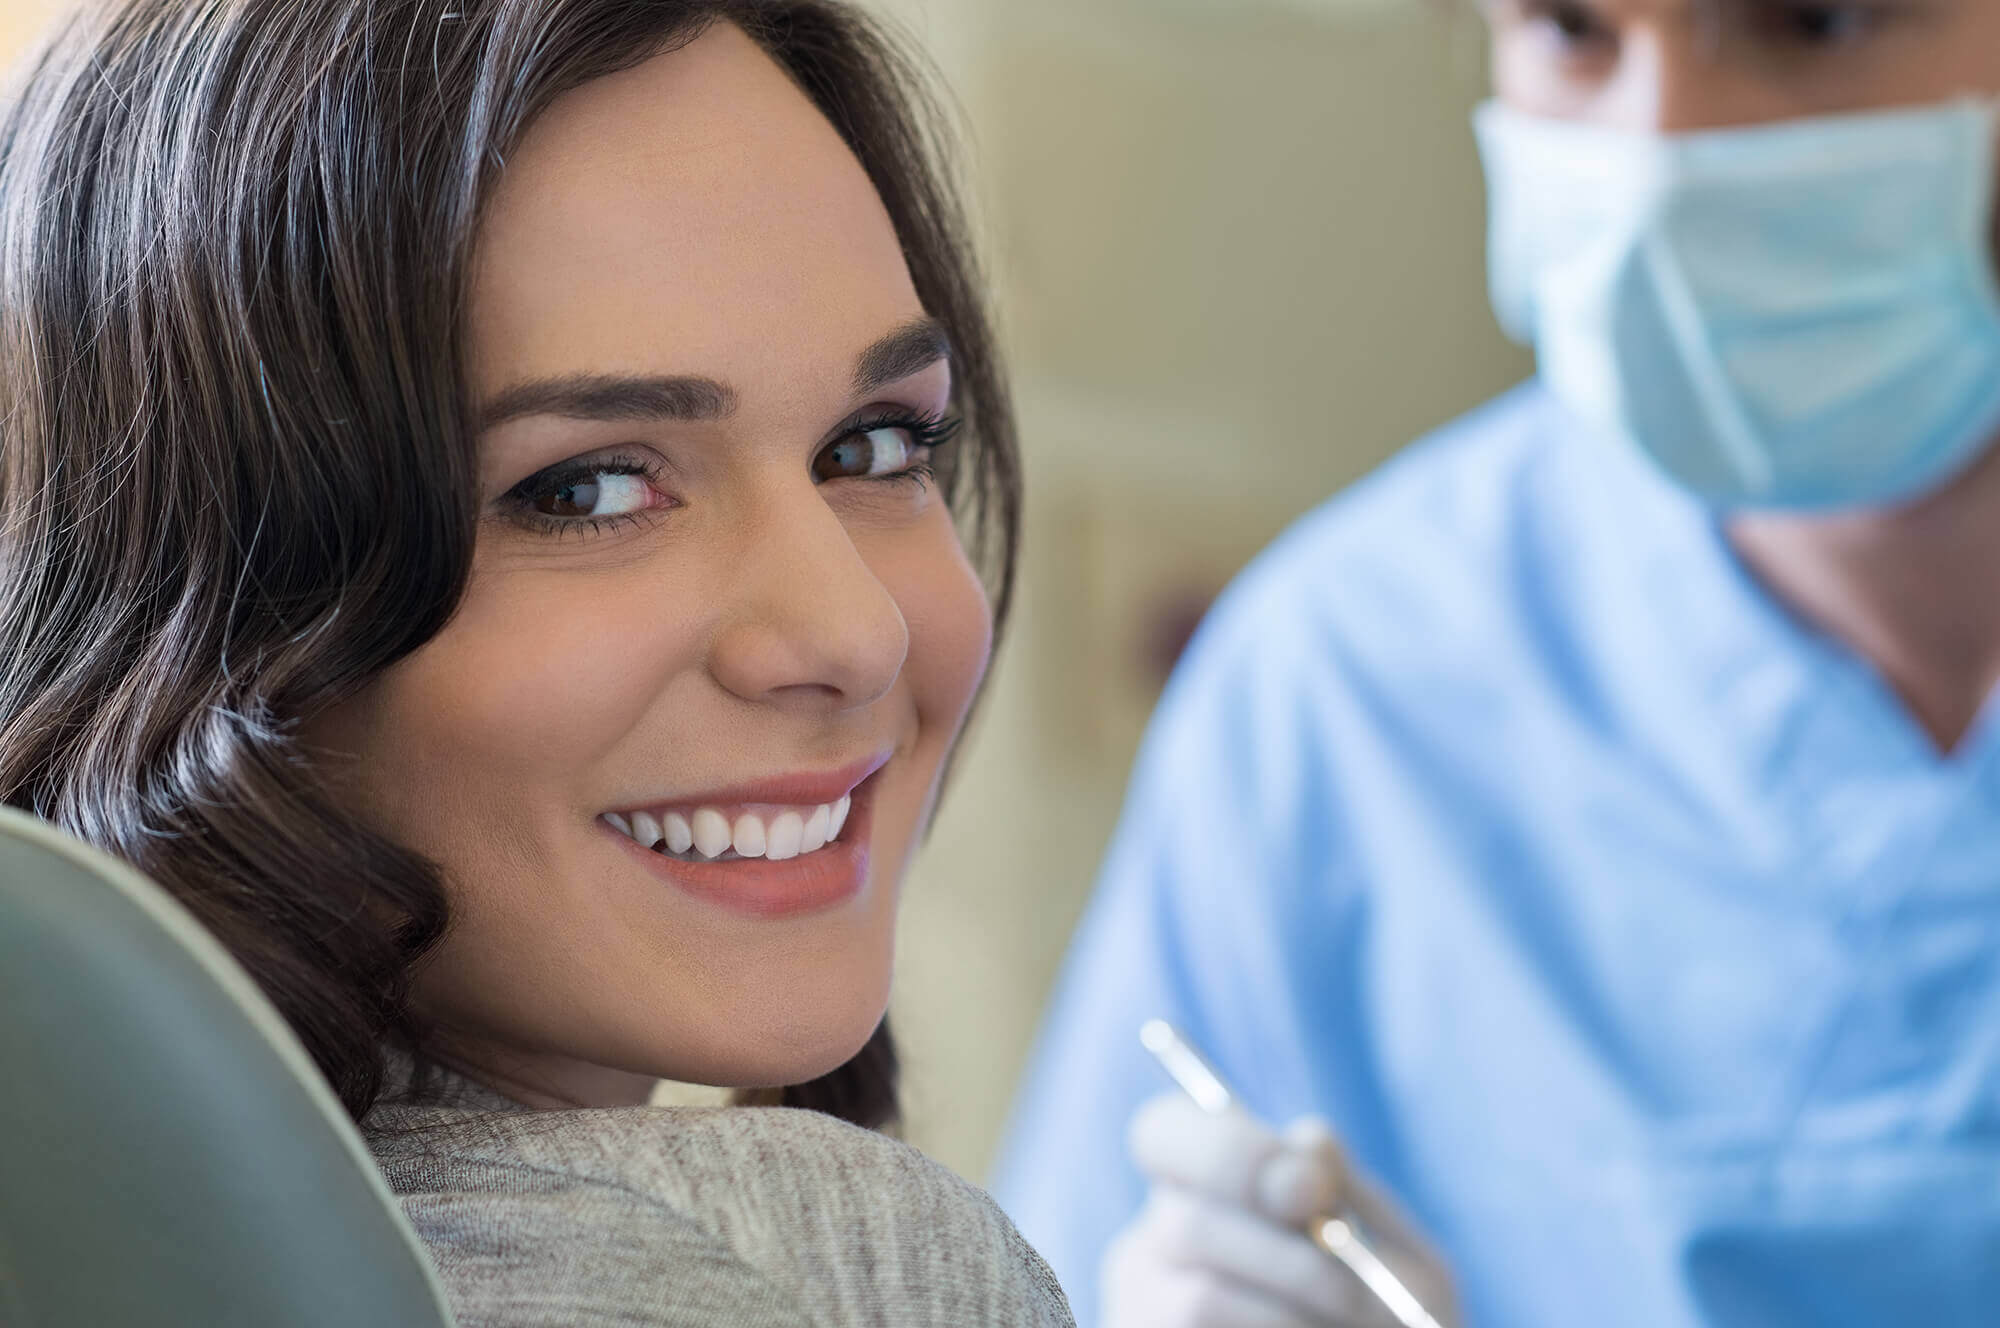 woman smiling at camera receives new patient information